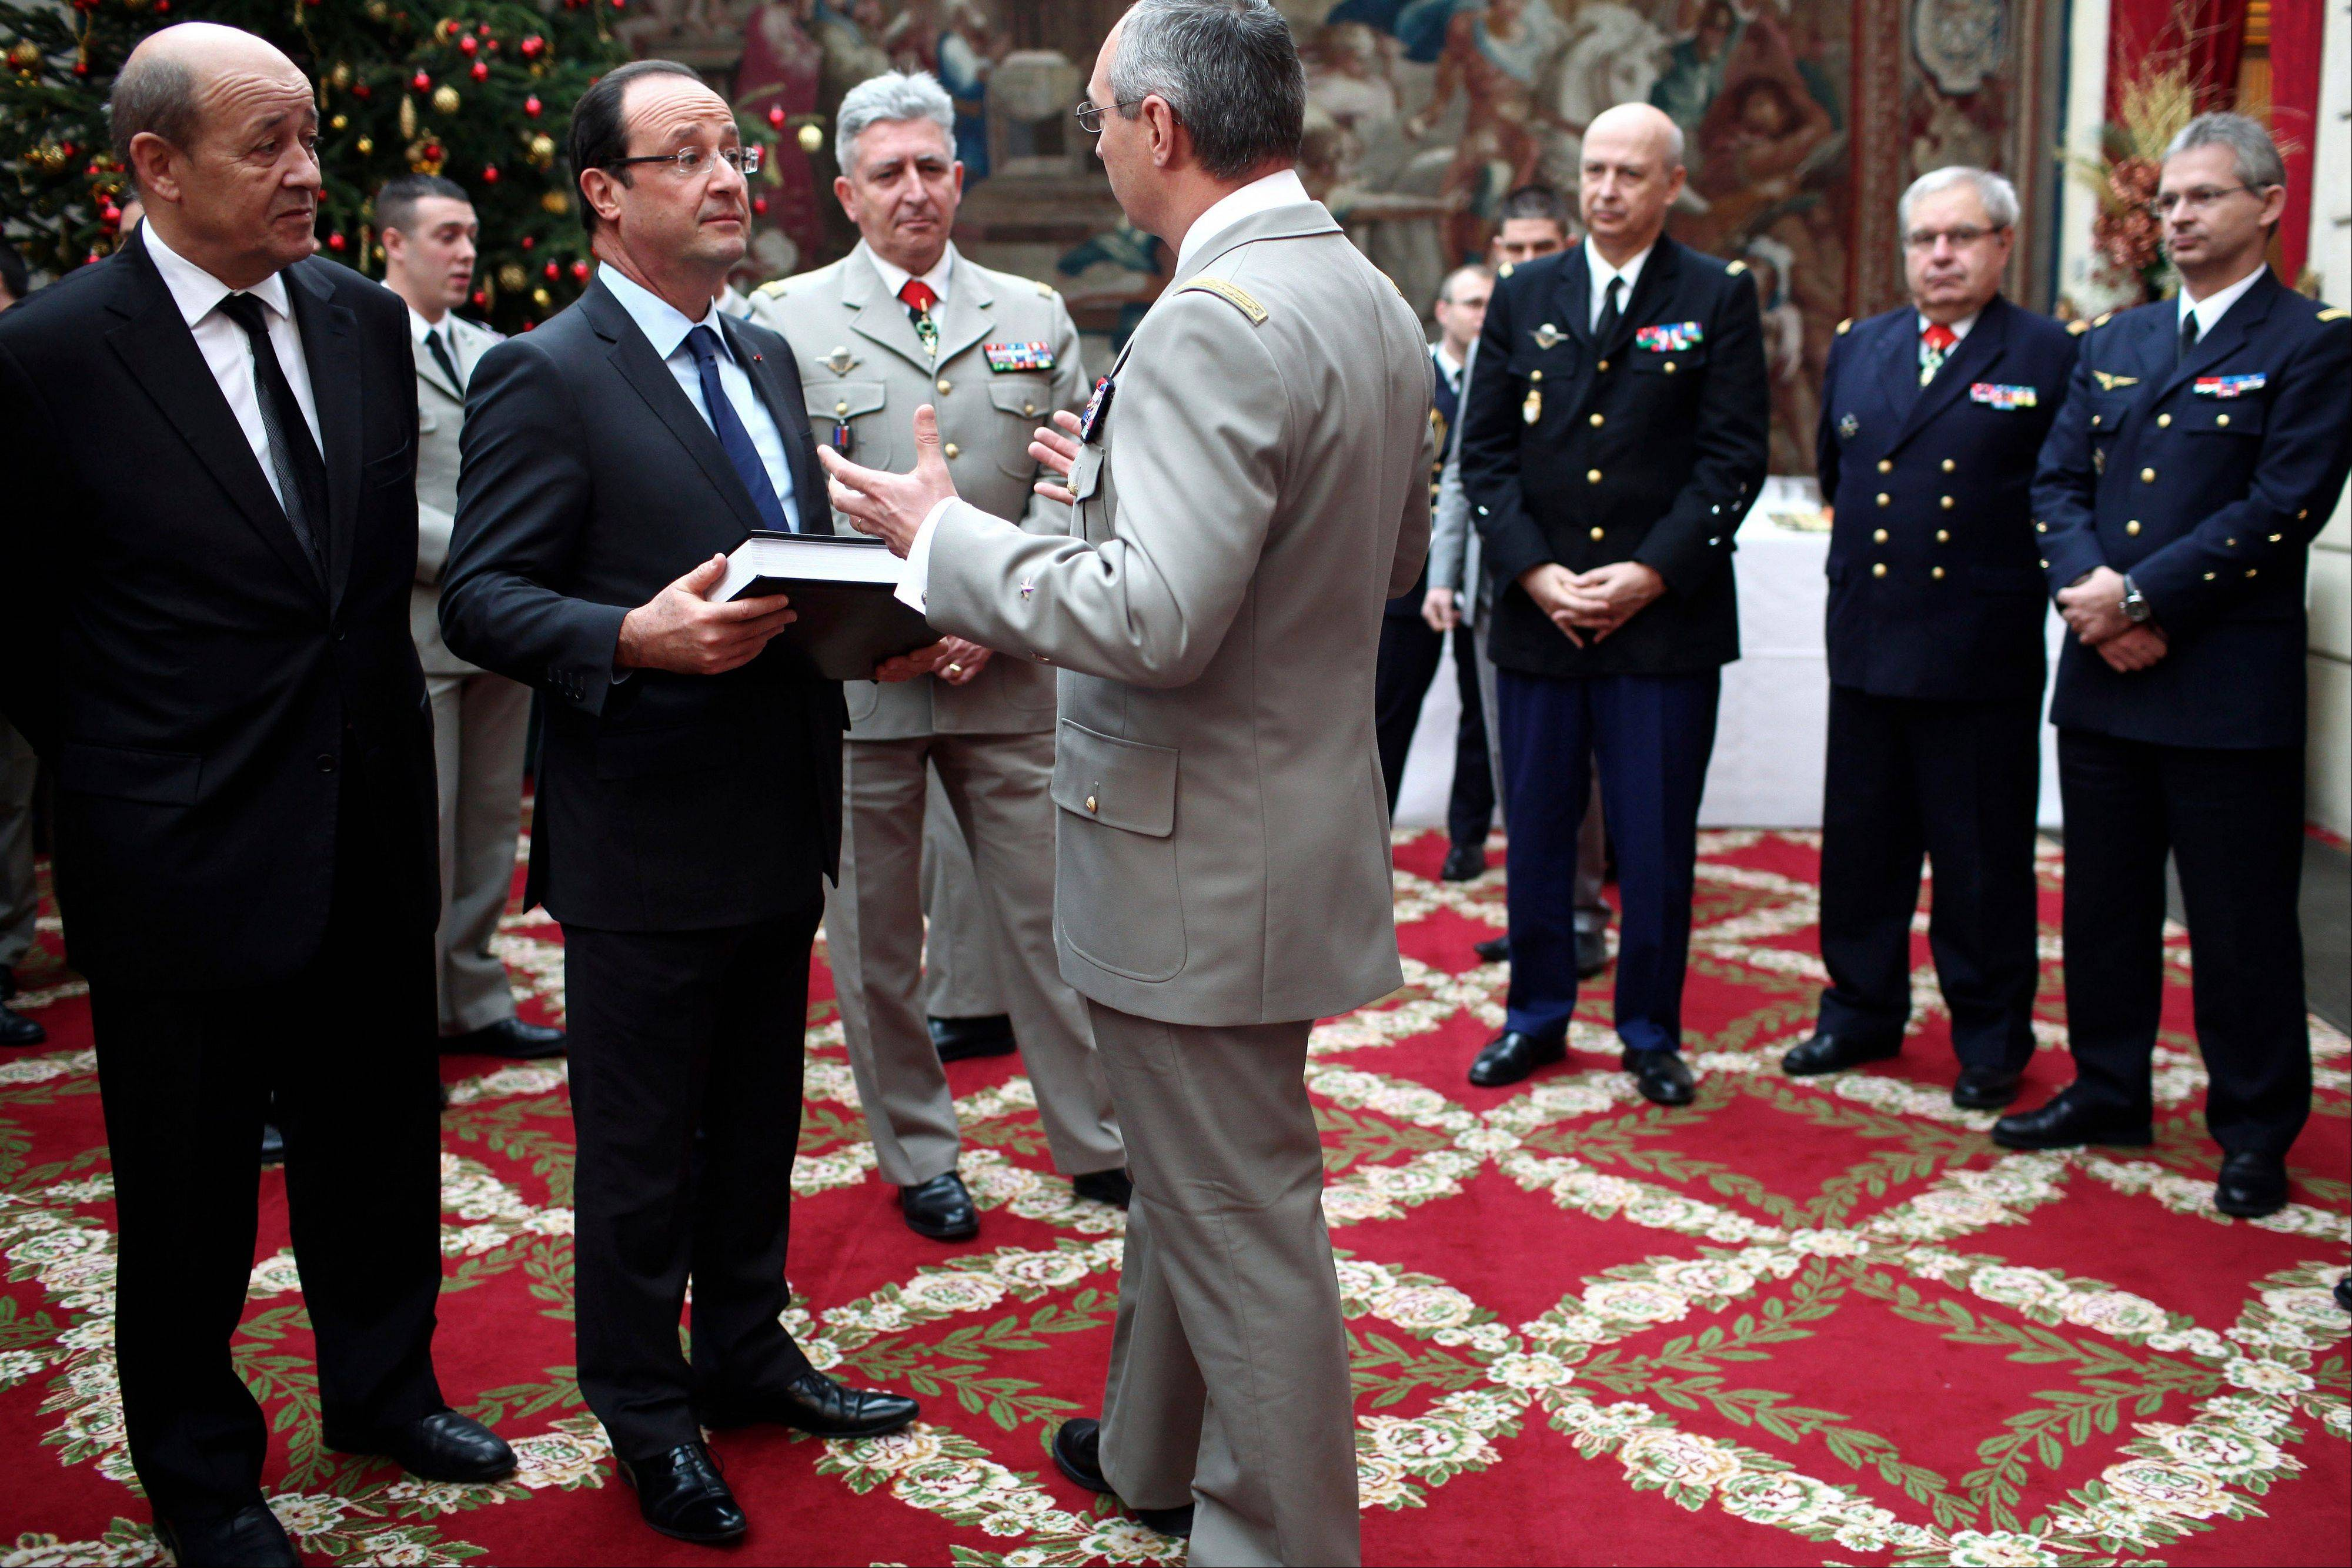 France�s President Francois Hollande, second left, and France�s Defense Minister Jean YvesLe Drian, left, talk with French army General Eric Hautecloque Raysz, center, during a ceremony to honor French troops home from Afghanistan, at the Elysee Palace, in Paris, Friday, Dec. 21, 2012. Hollande has declared �mission accomplished� for French combat troops who returned home recently from Afghanistan. France still has 1,500 troops in Afghanistan repatriating equipment or working in roles like providing medical care or helping run Kabul�s airport. Hollande said the numbers will decline to 500 by mid-2013.